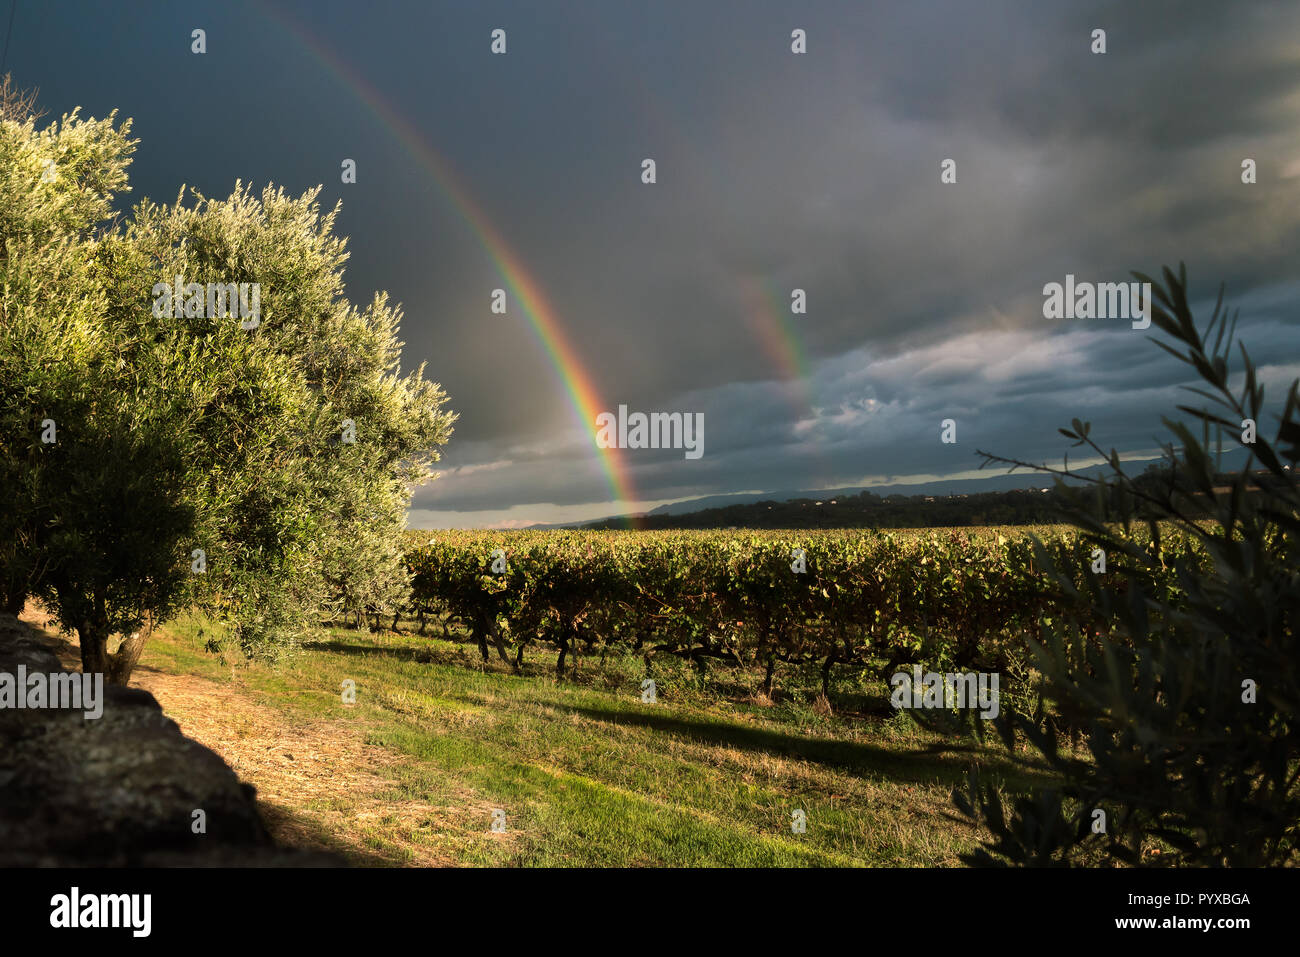 Serra da Estrela at sunset with a rainbow on cloudy day and with a vine  as background - Stock Image